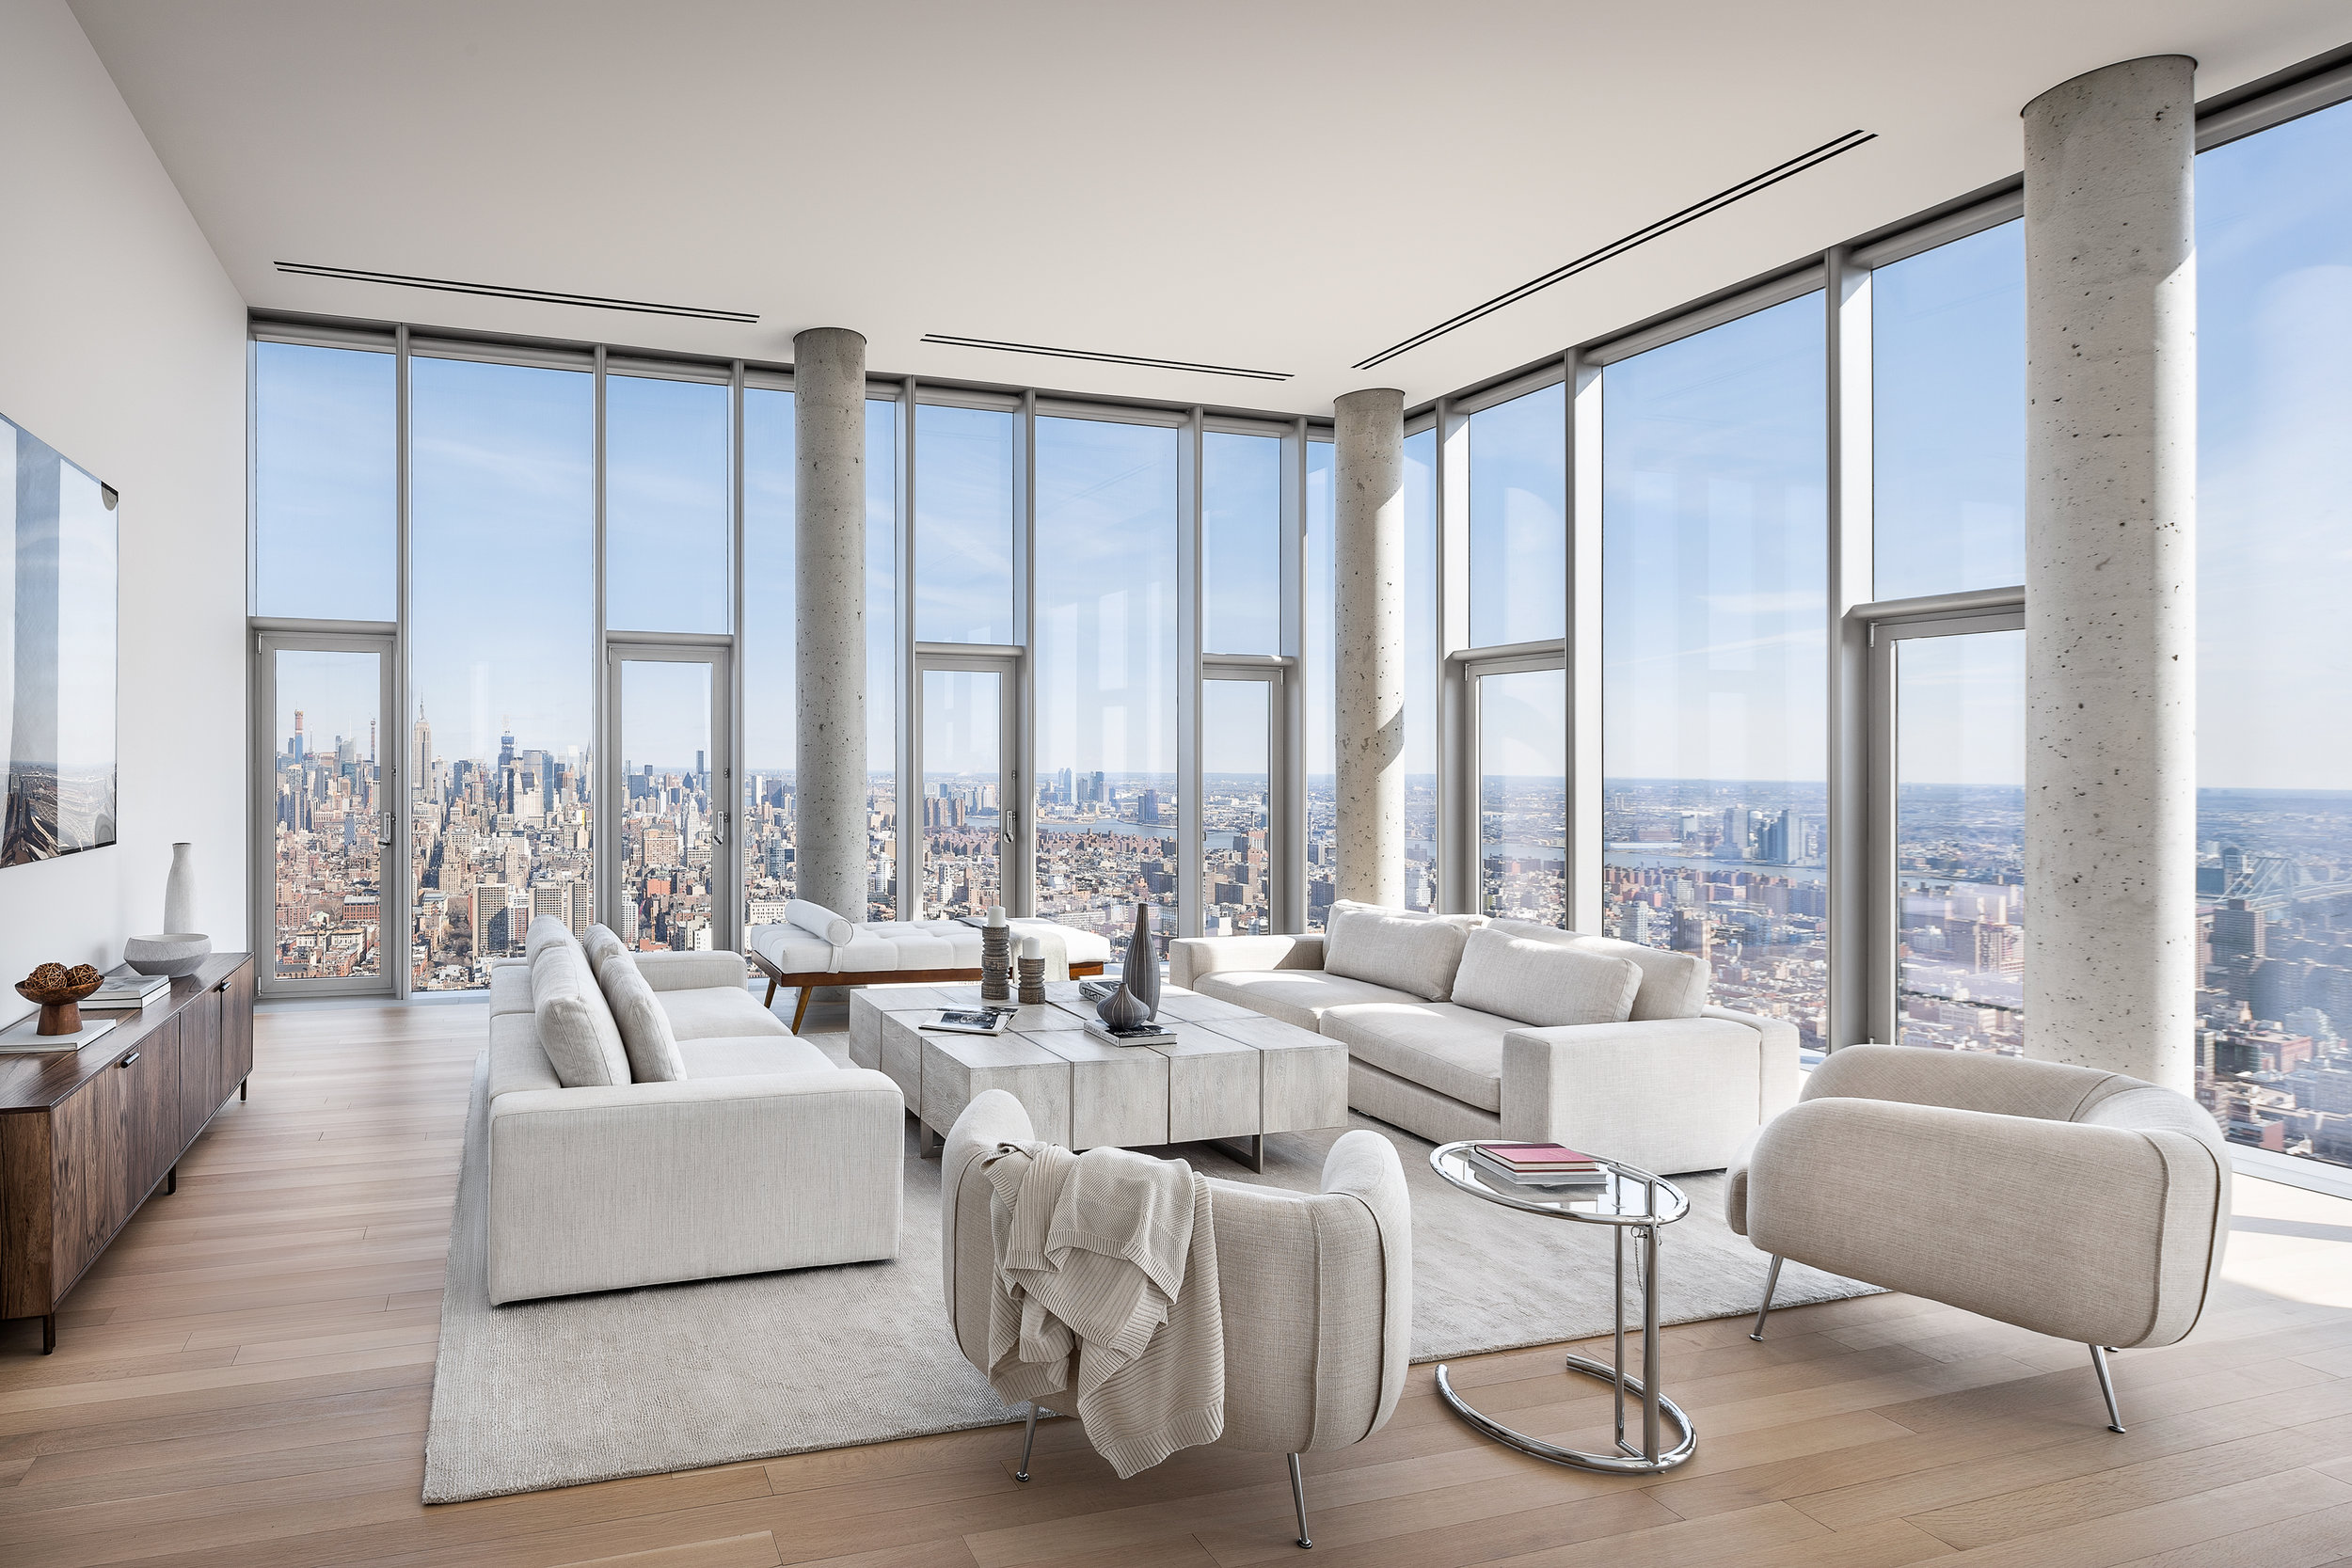 The Last Full Floor Penthouse At 56 Leonard Revealed Asking $29.5 Million